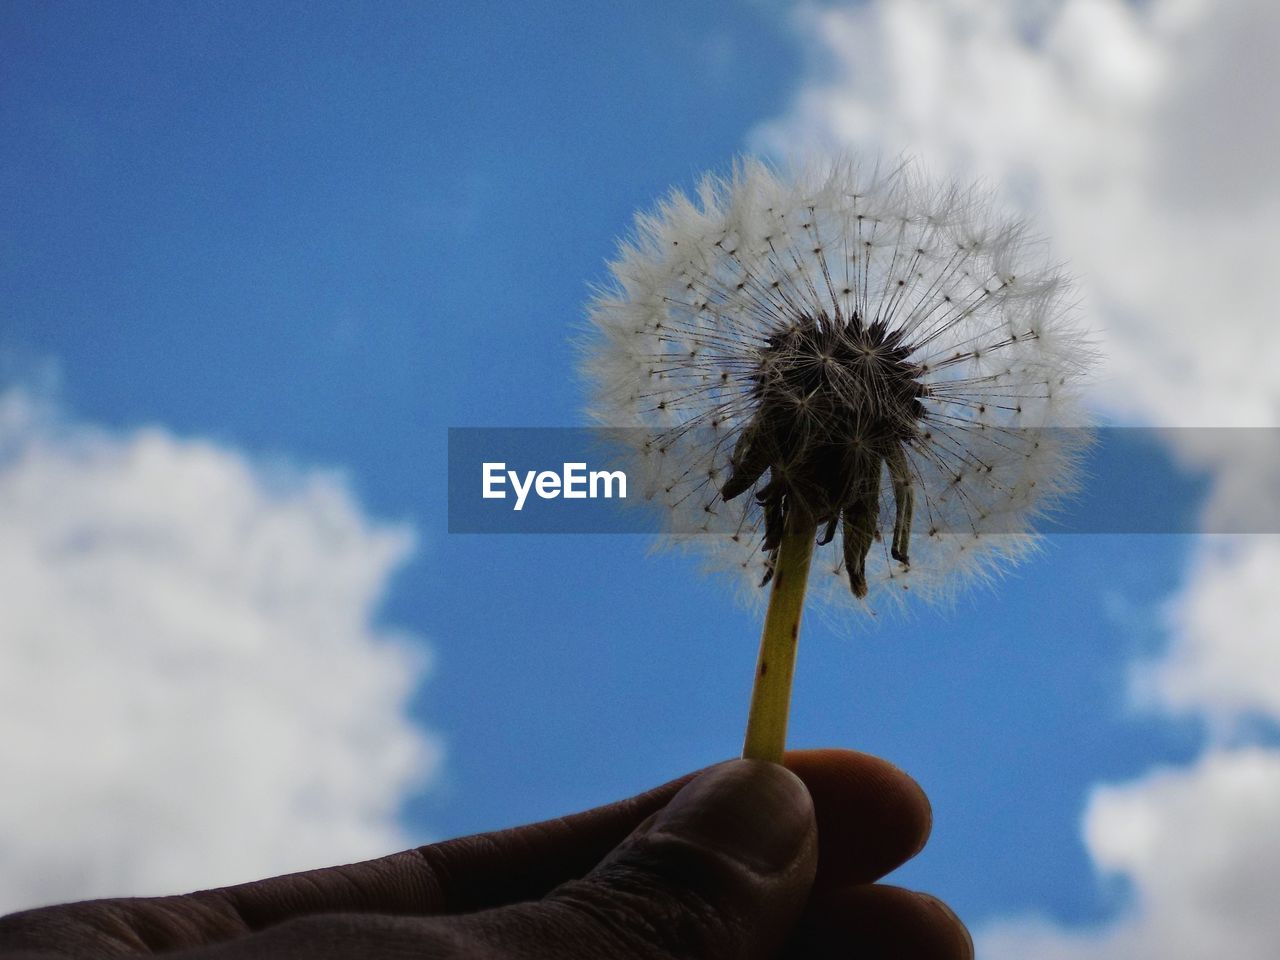 human hand, flower, hand, flowering plant, human body part, dandelion, fragility, unrecognizable person, sky, real people, one person, plant, vulnerability, finger, holding, body part, nature, close-up, human finger, freshness, flower head, outdoors, softness, dandelion seed